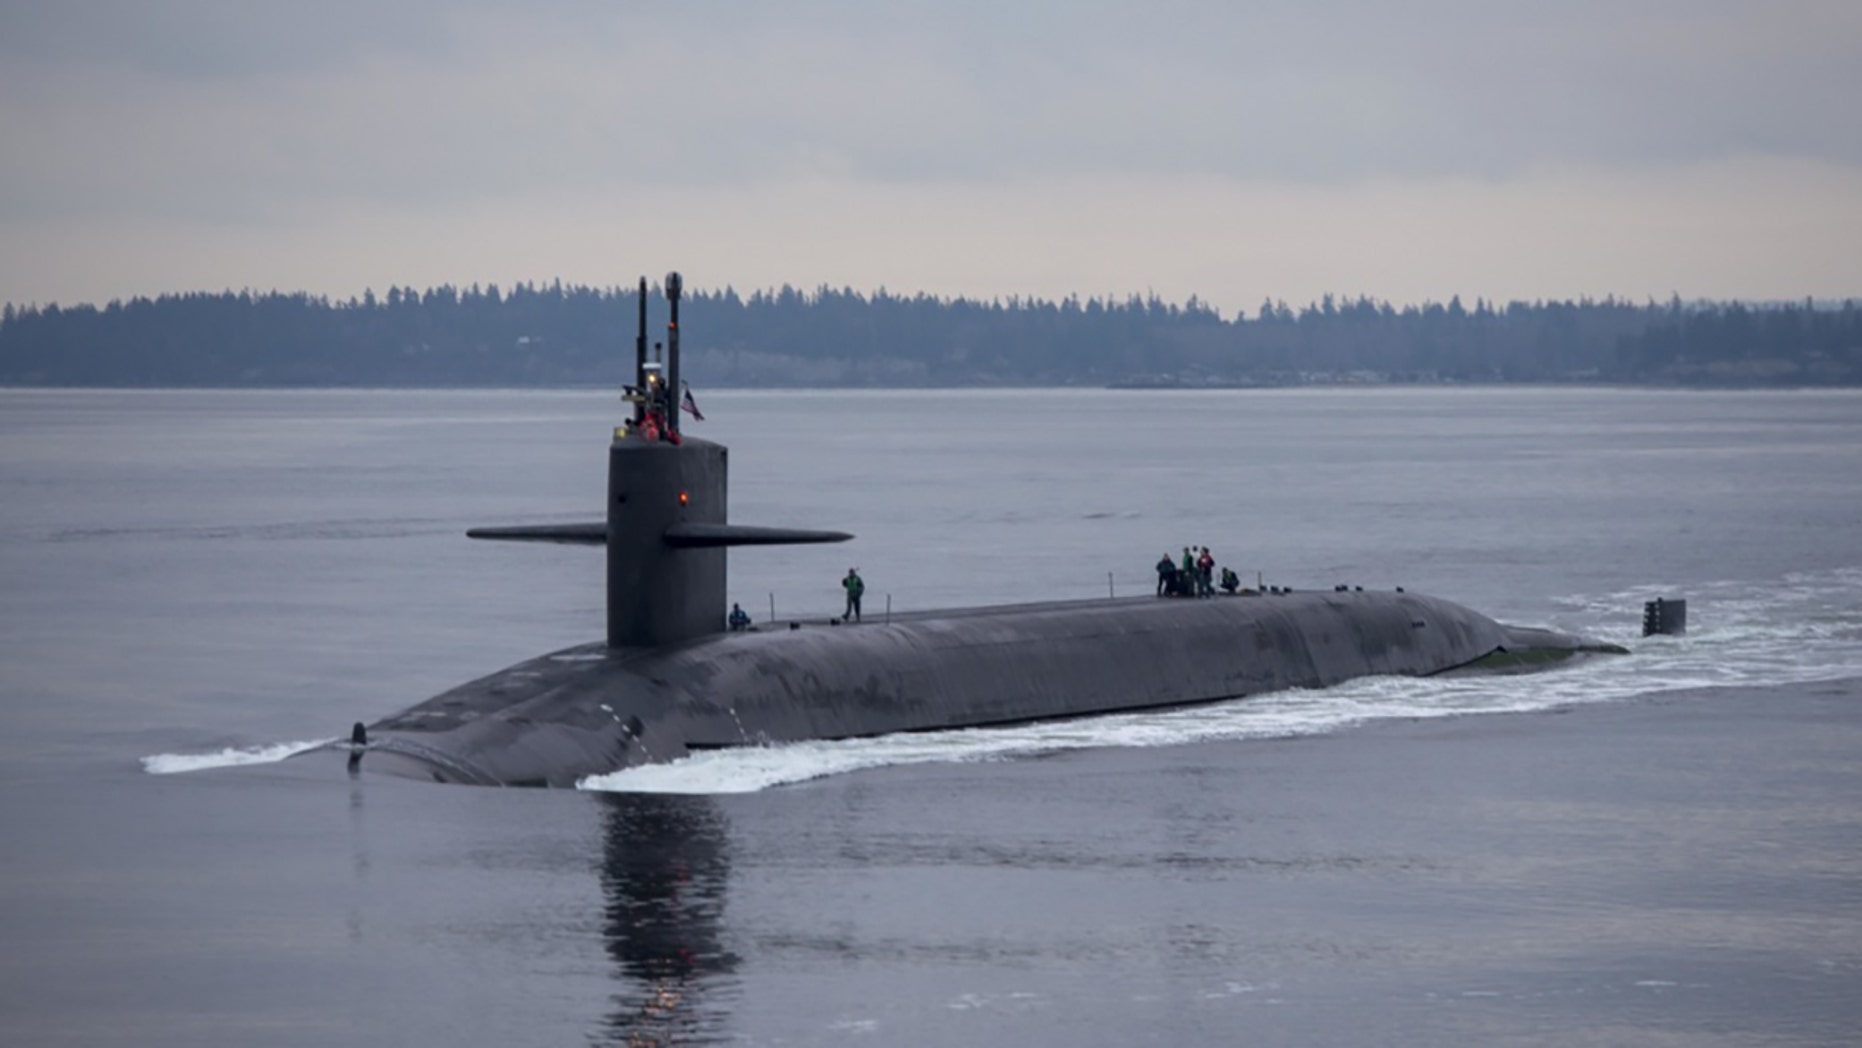 The Ohio-class ballistic-missile submarine USS Pennsylvania returns to Naval Base Kitsap-Bangor in Washington State, Dec. 27, 2017. It is one of eight ballistic-missile subs stationed at the base.